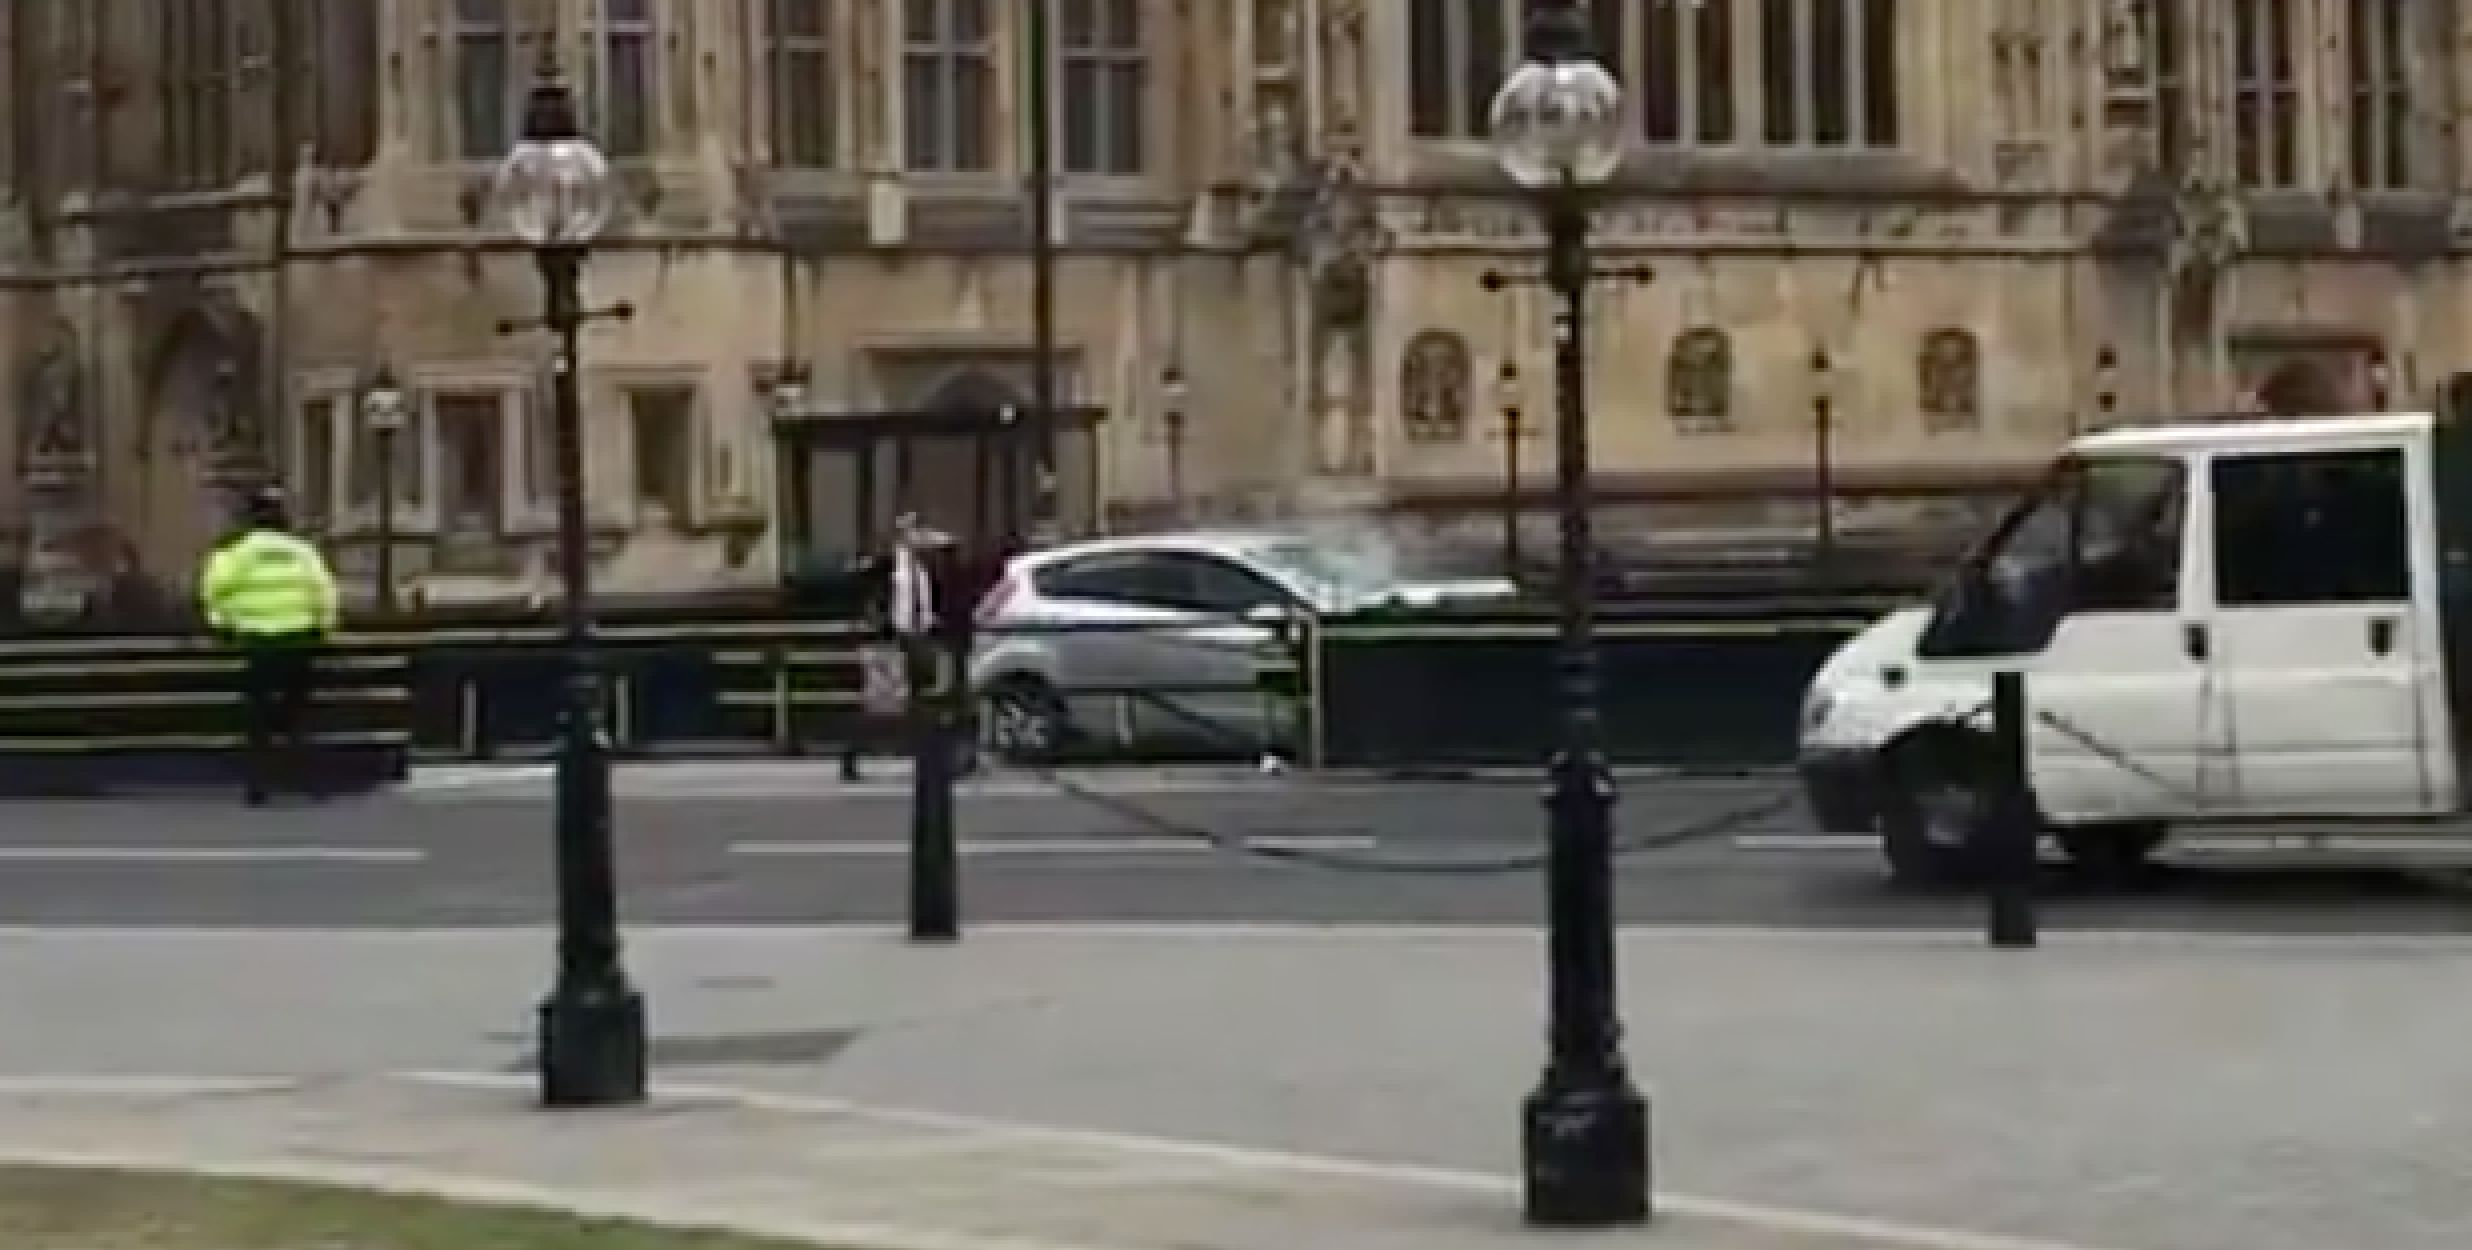 Westminster auto crash being treated as terror attack